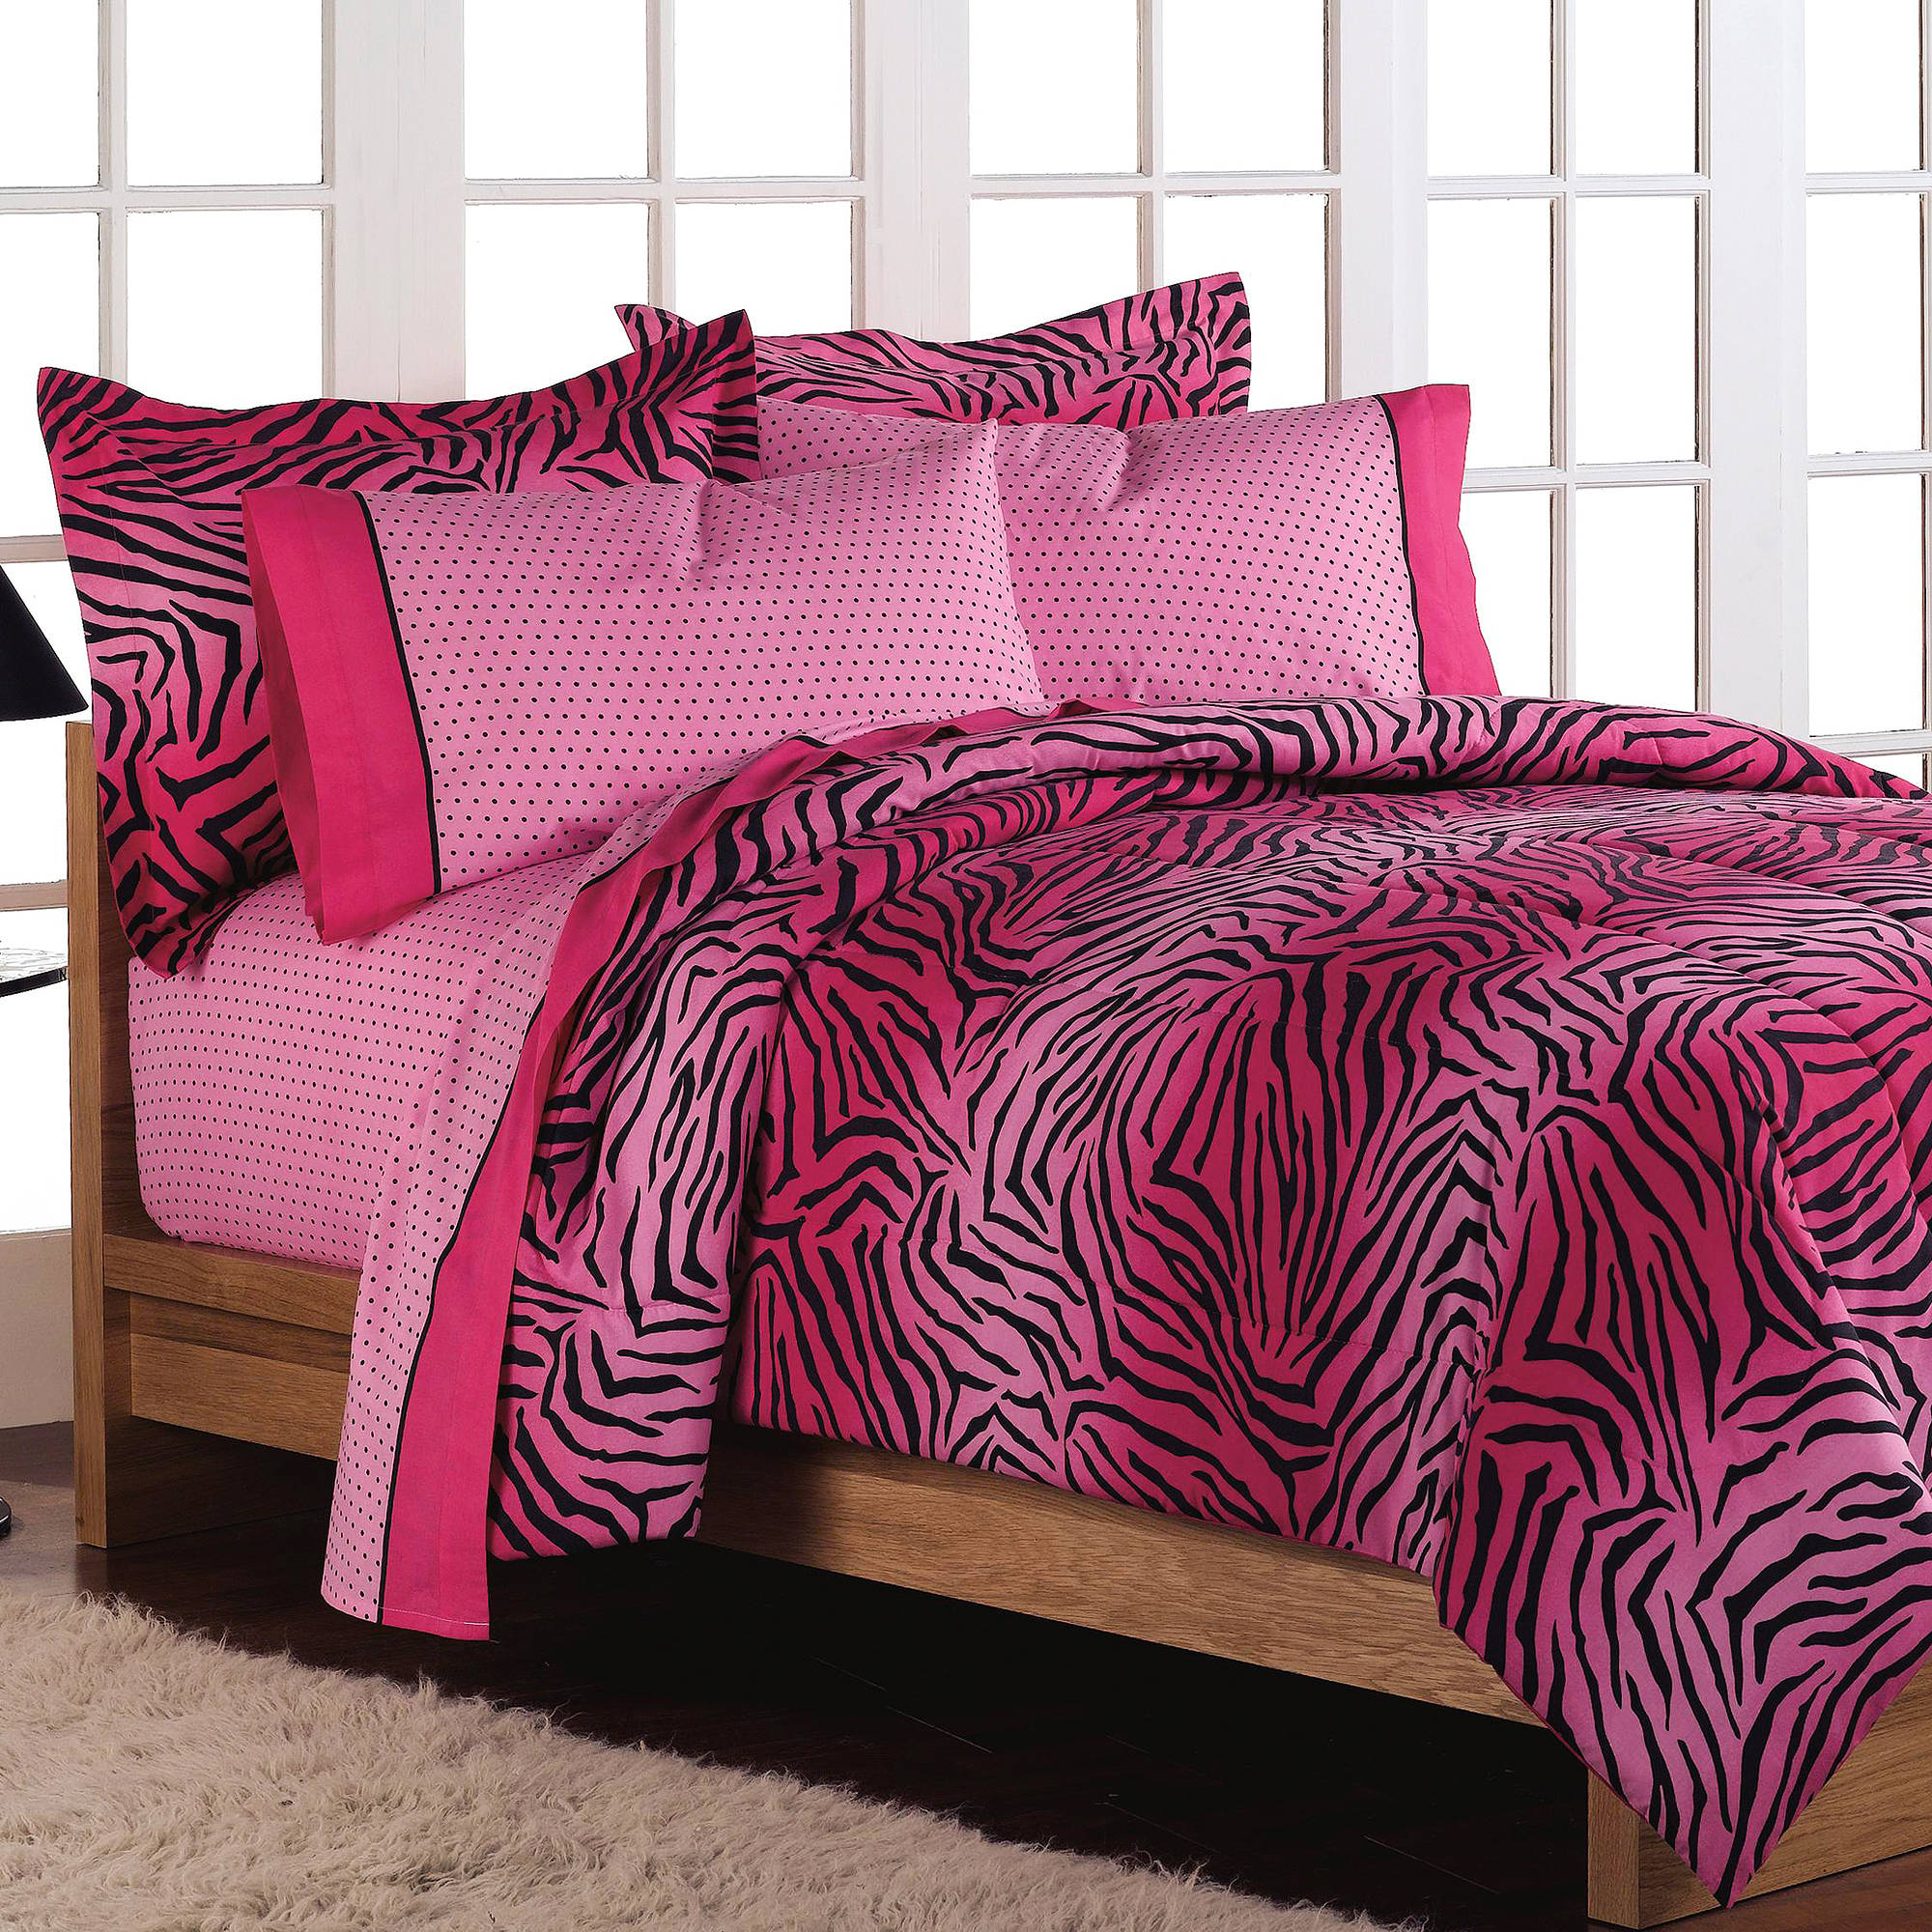 Loft Style Wild One Pink Reversible Bed in a Bag